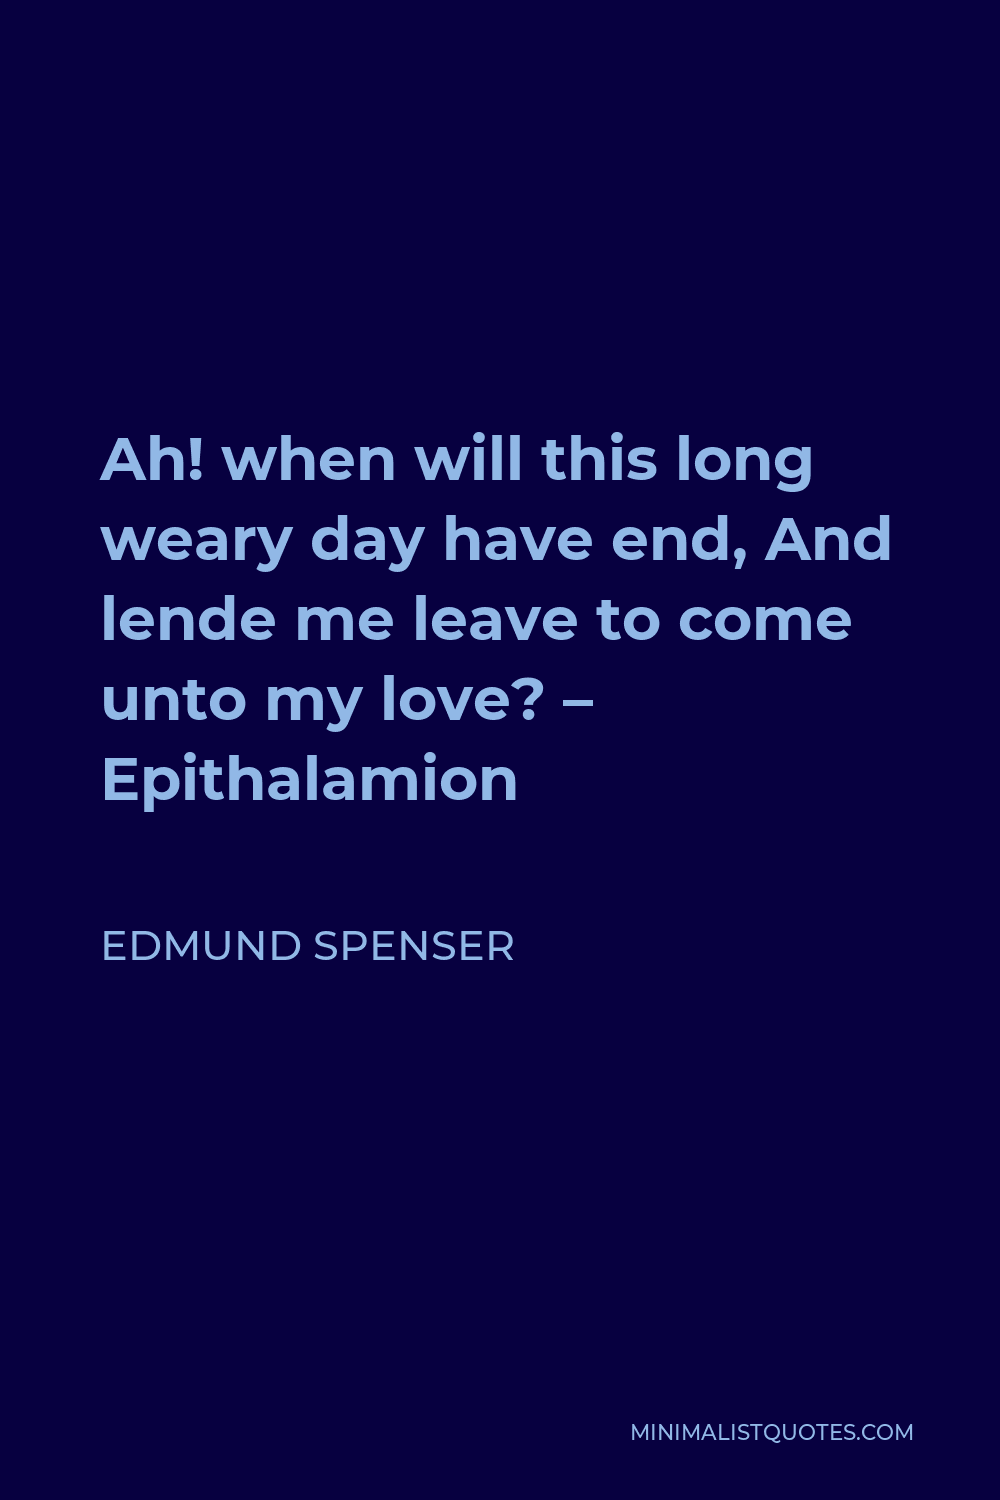 Edmund Spenser Quote - Ah! when will this long weary day have end, And lende me leave to come unto my love? – Epithalamion